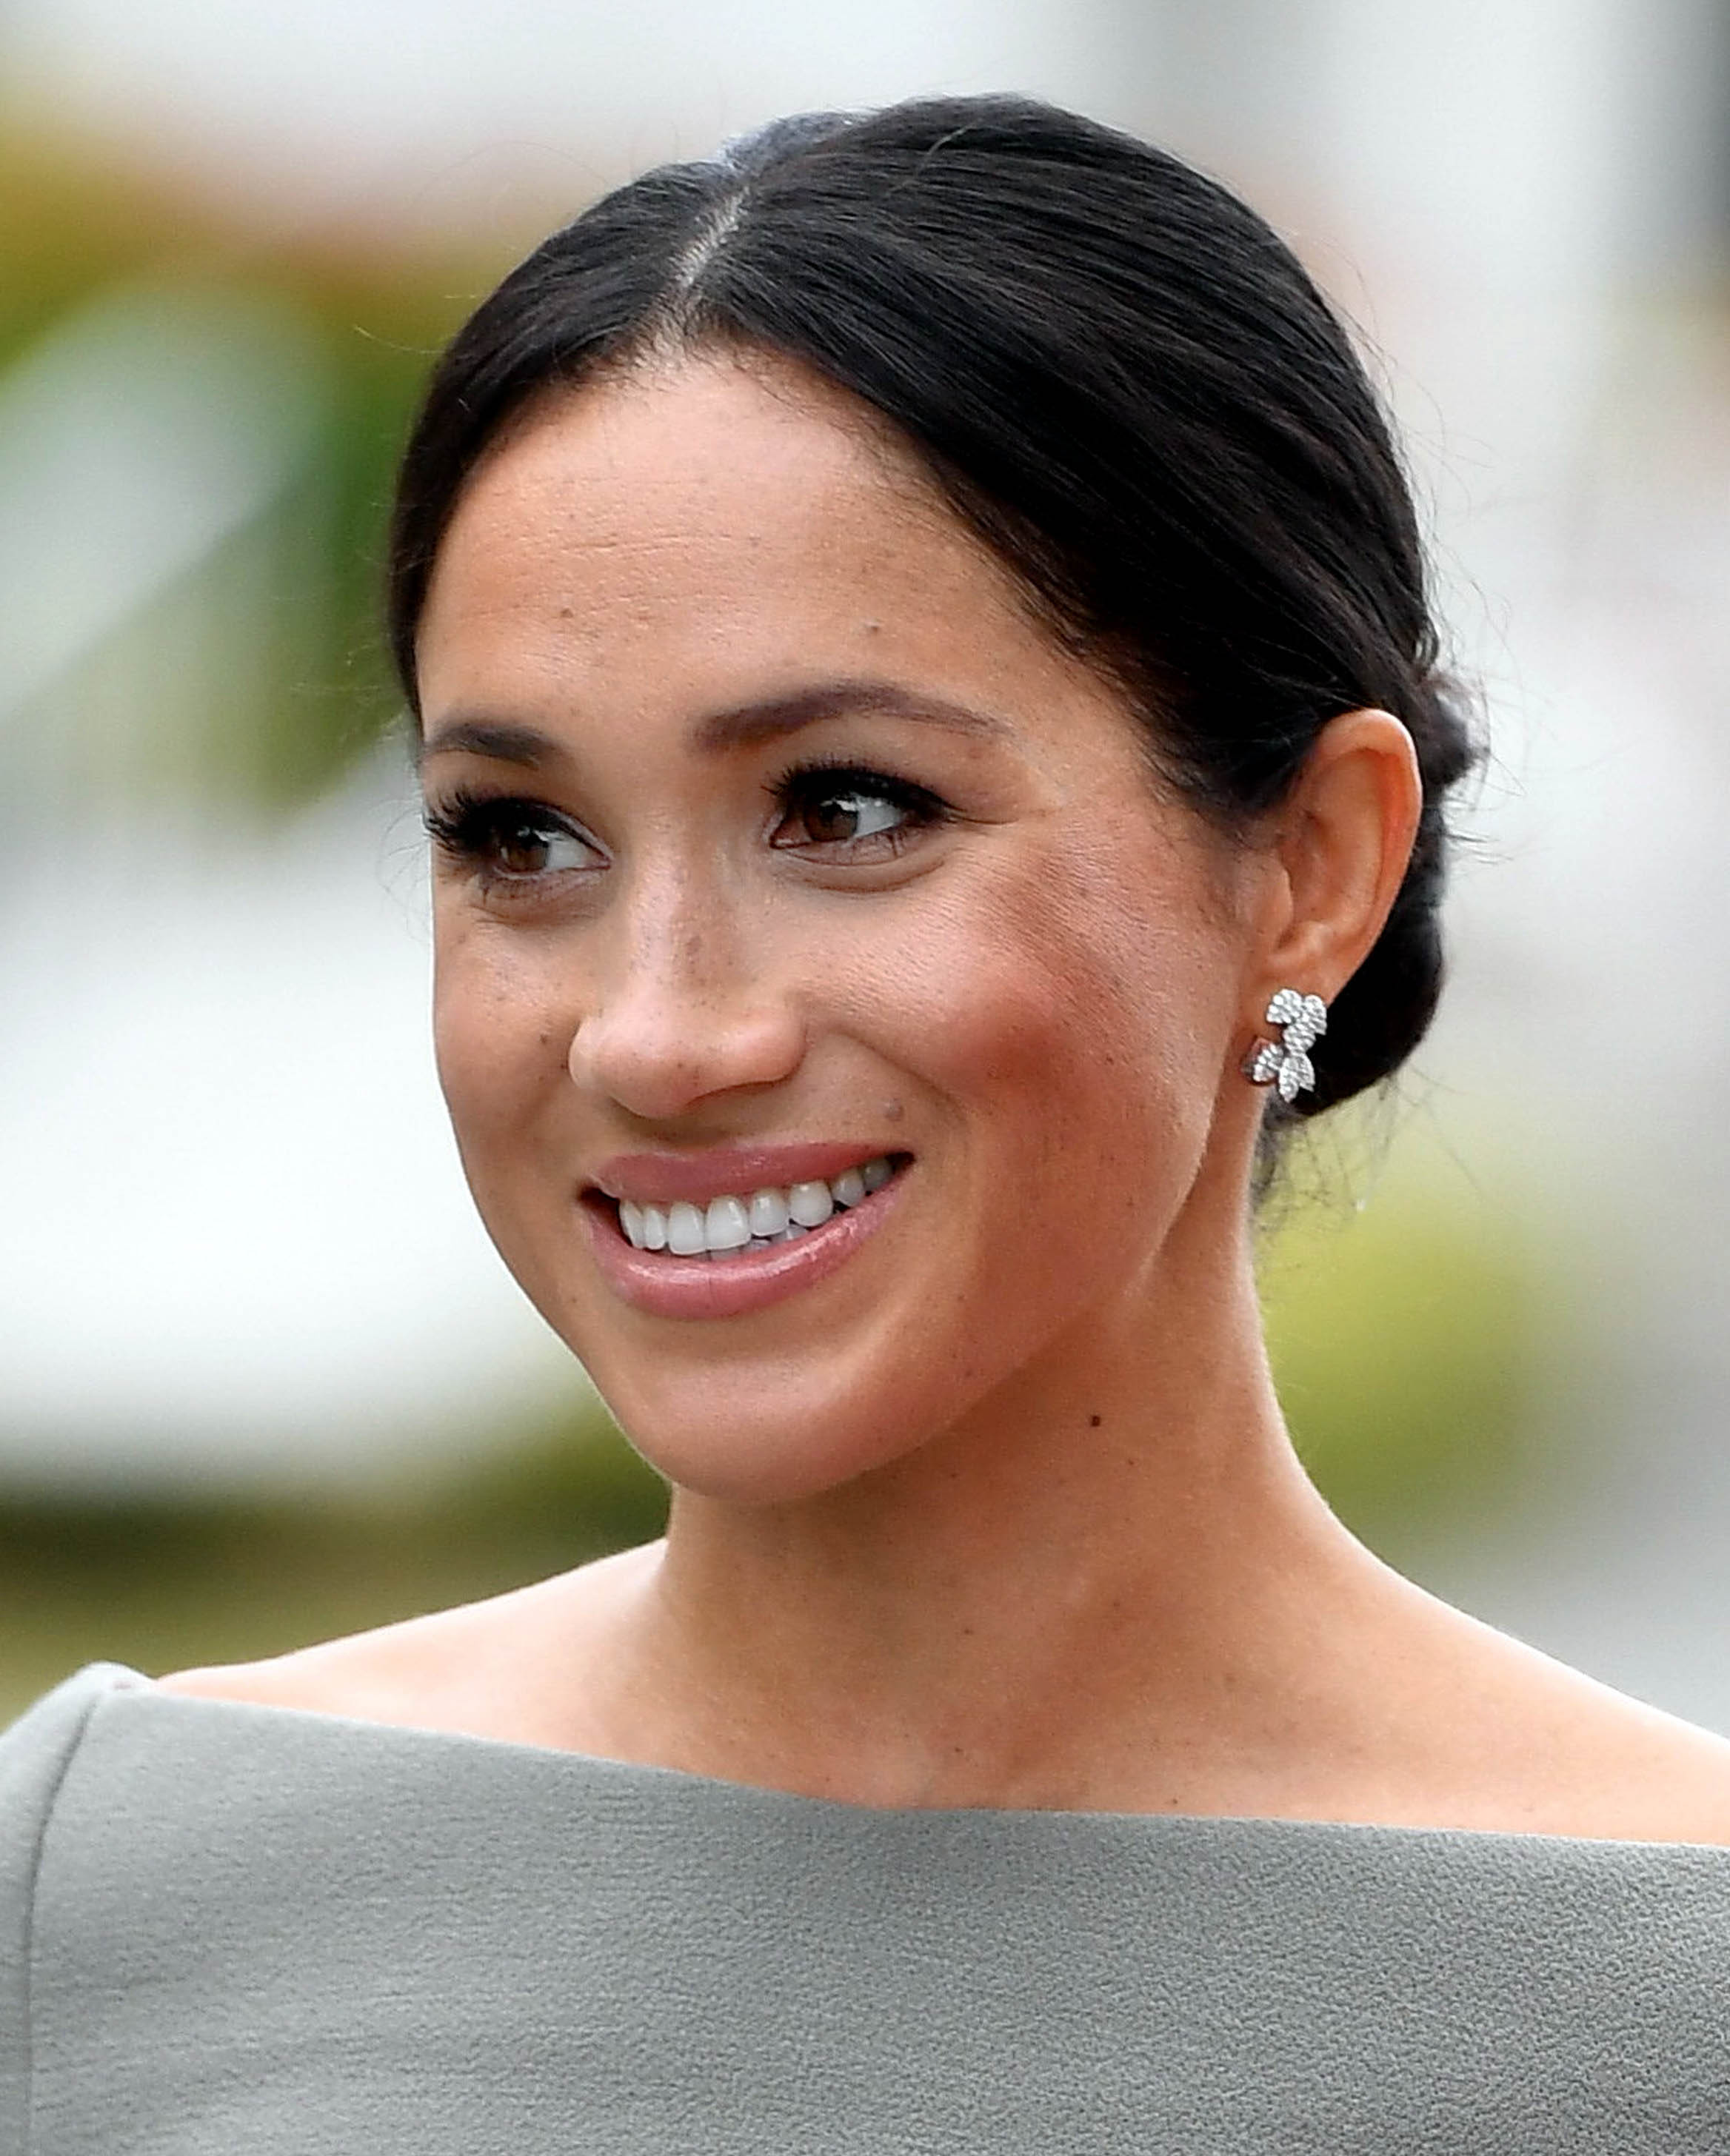 Sister Megan Markle once again insulted the Duchess